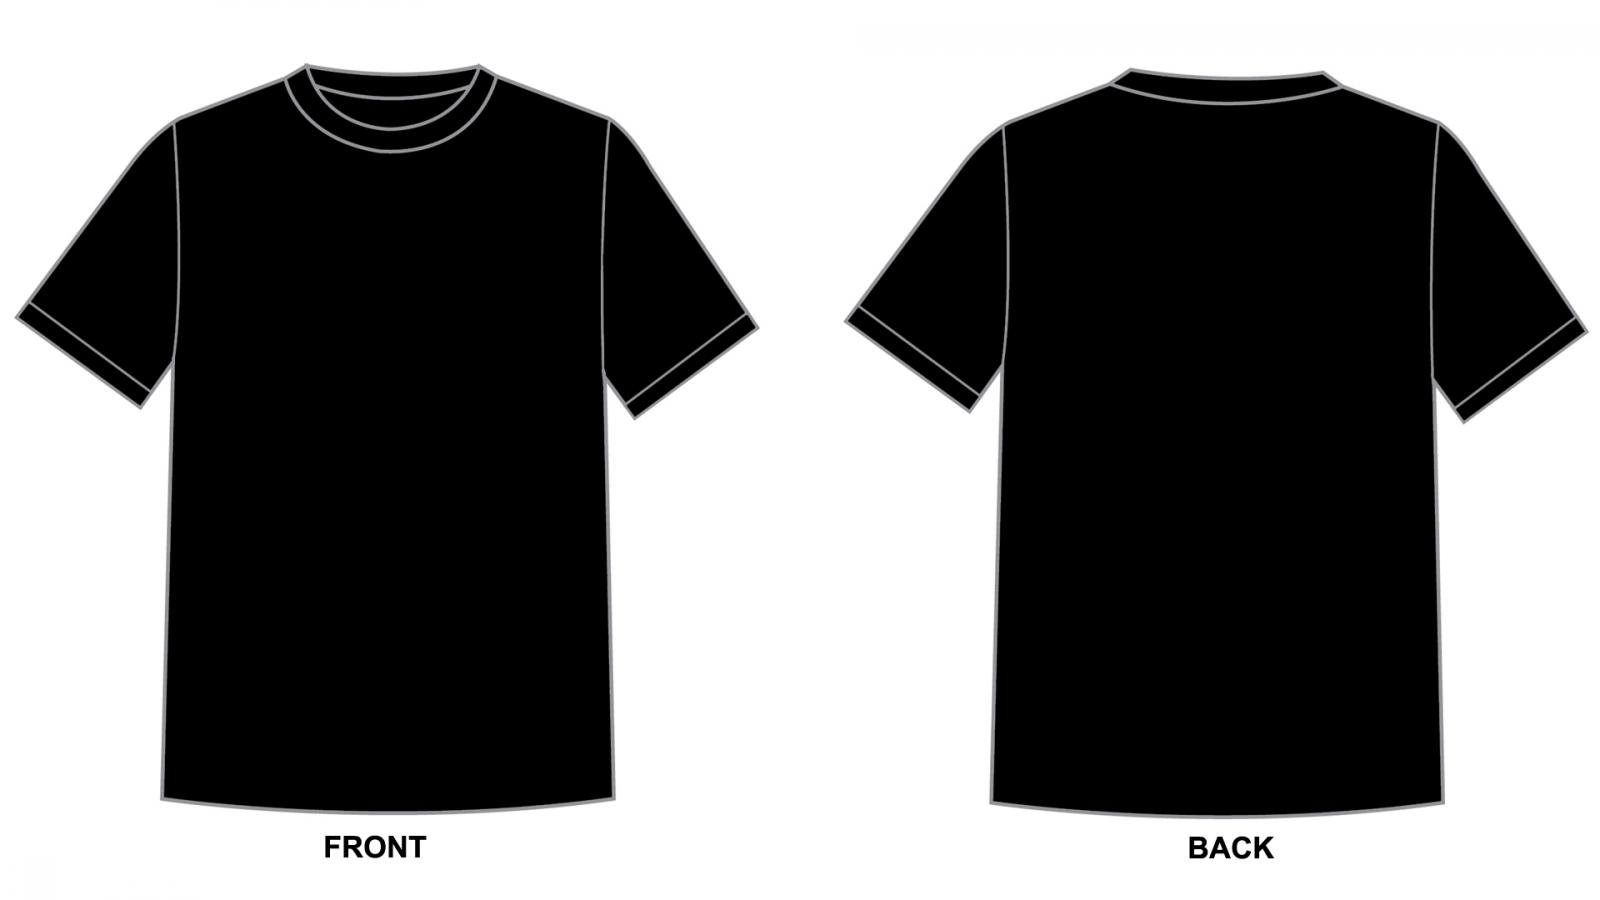 black t shirts template - photo #31